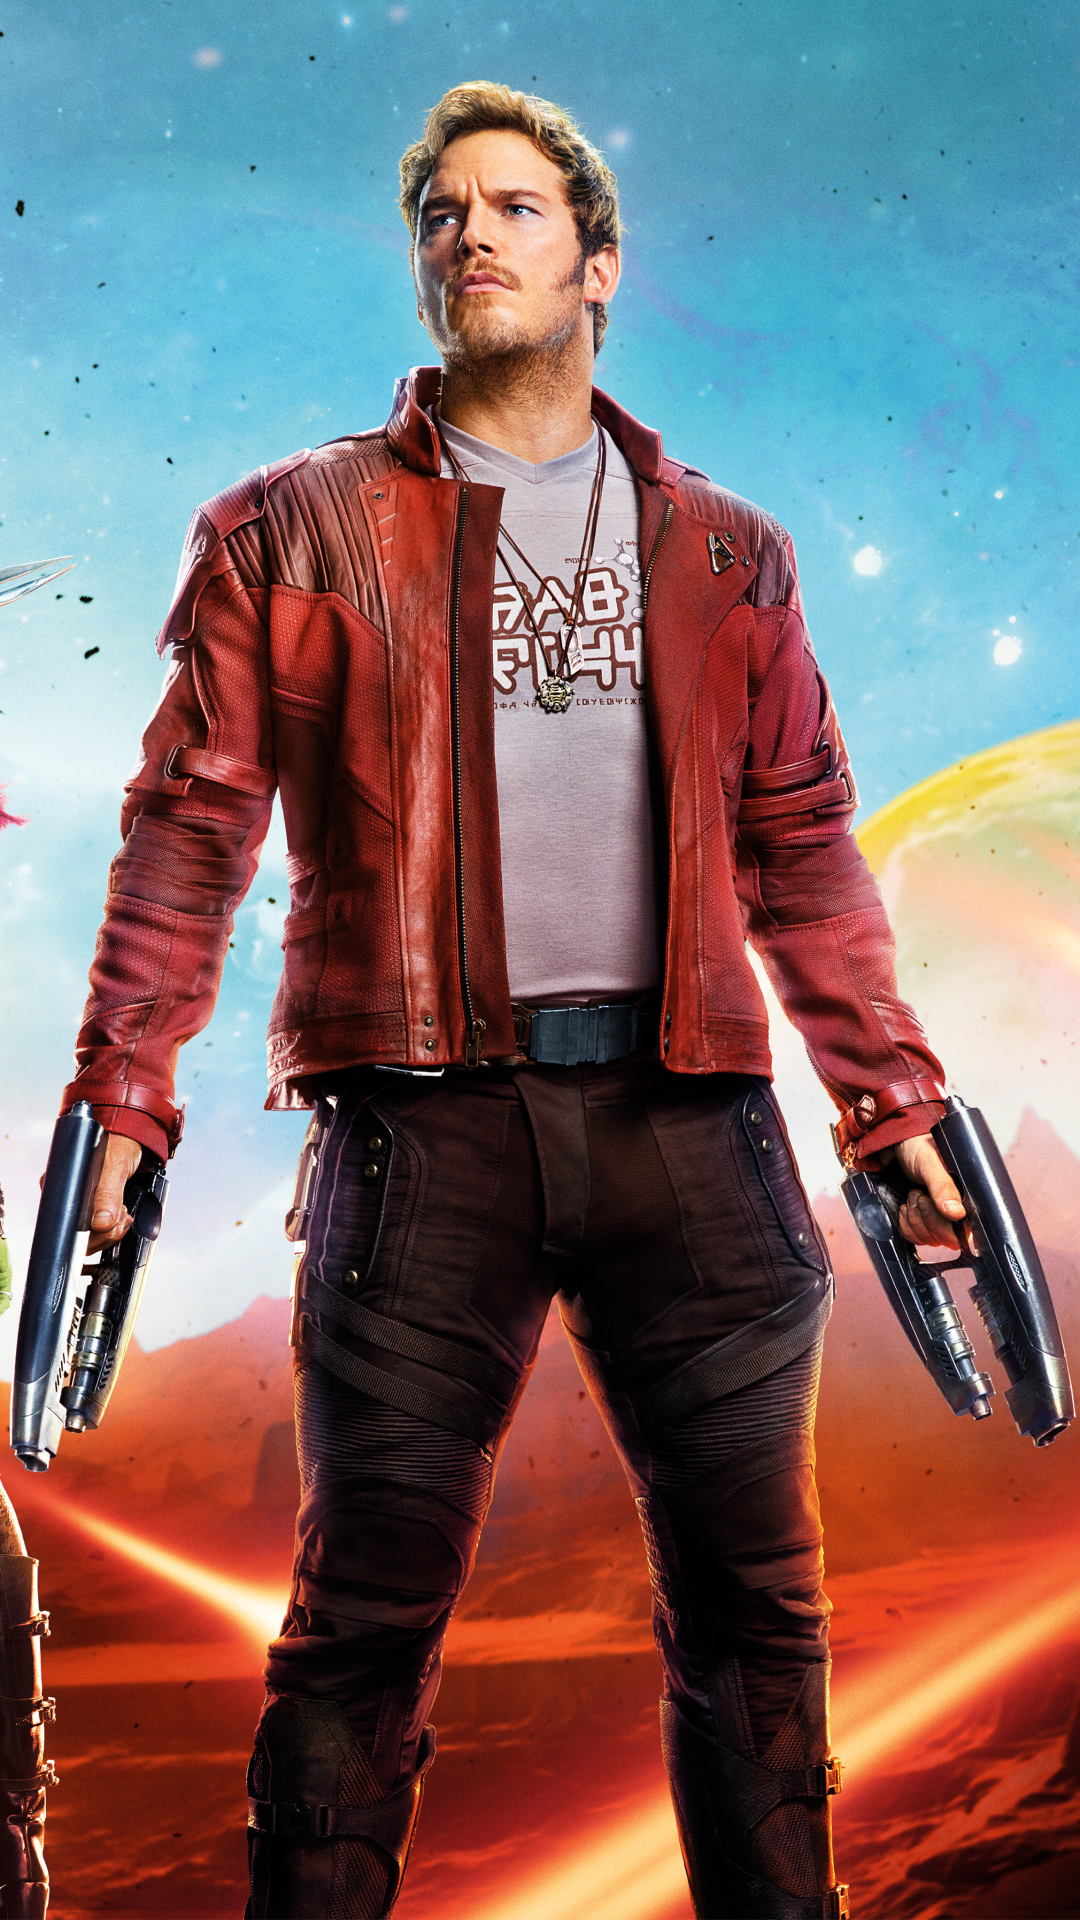 Wallpaper Guardians Of The Galaxy 2 Star Lord 1036376 Hd